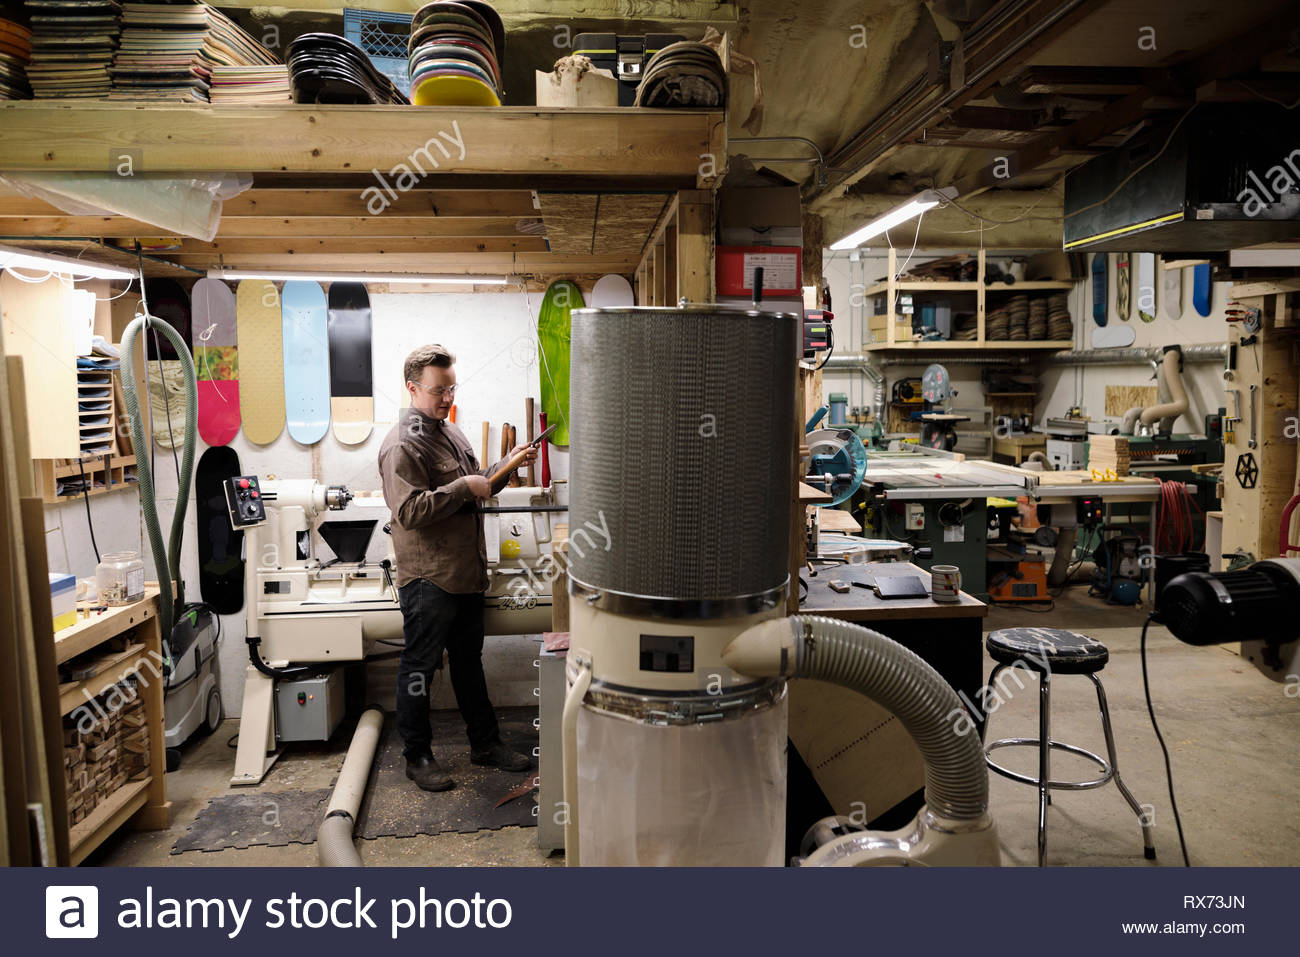 Male artist working with recycled skateboards in workshop - Stock Image